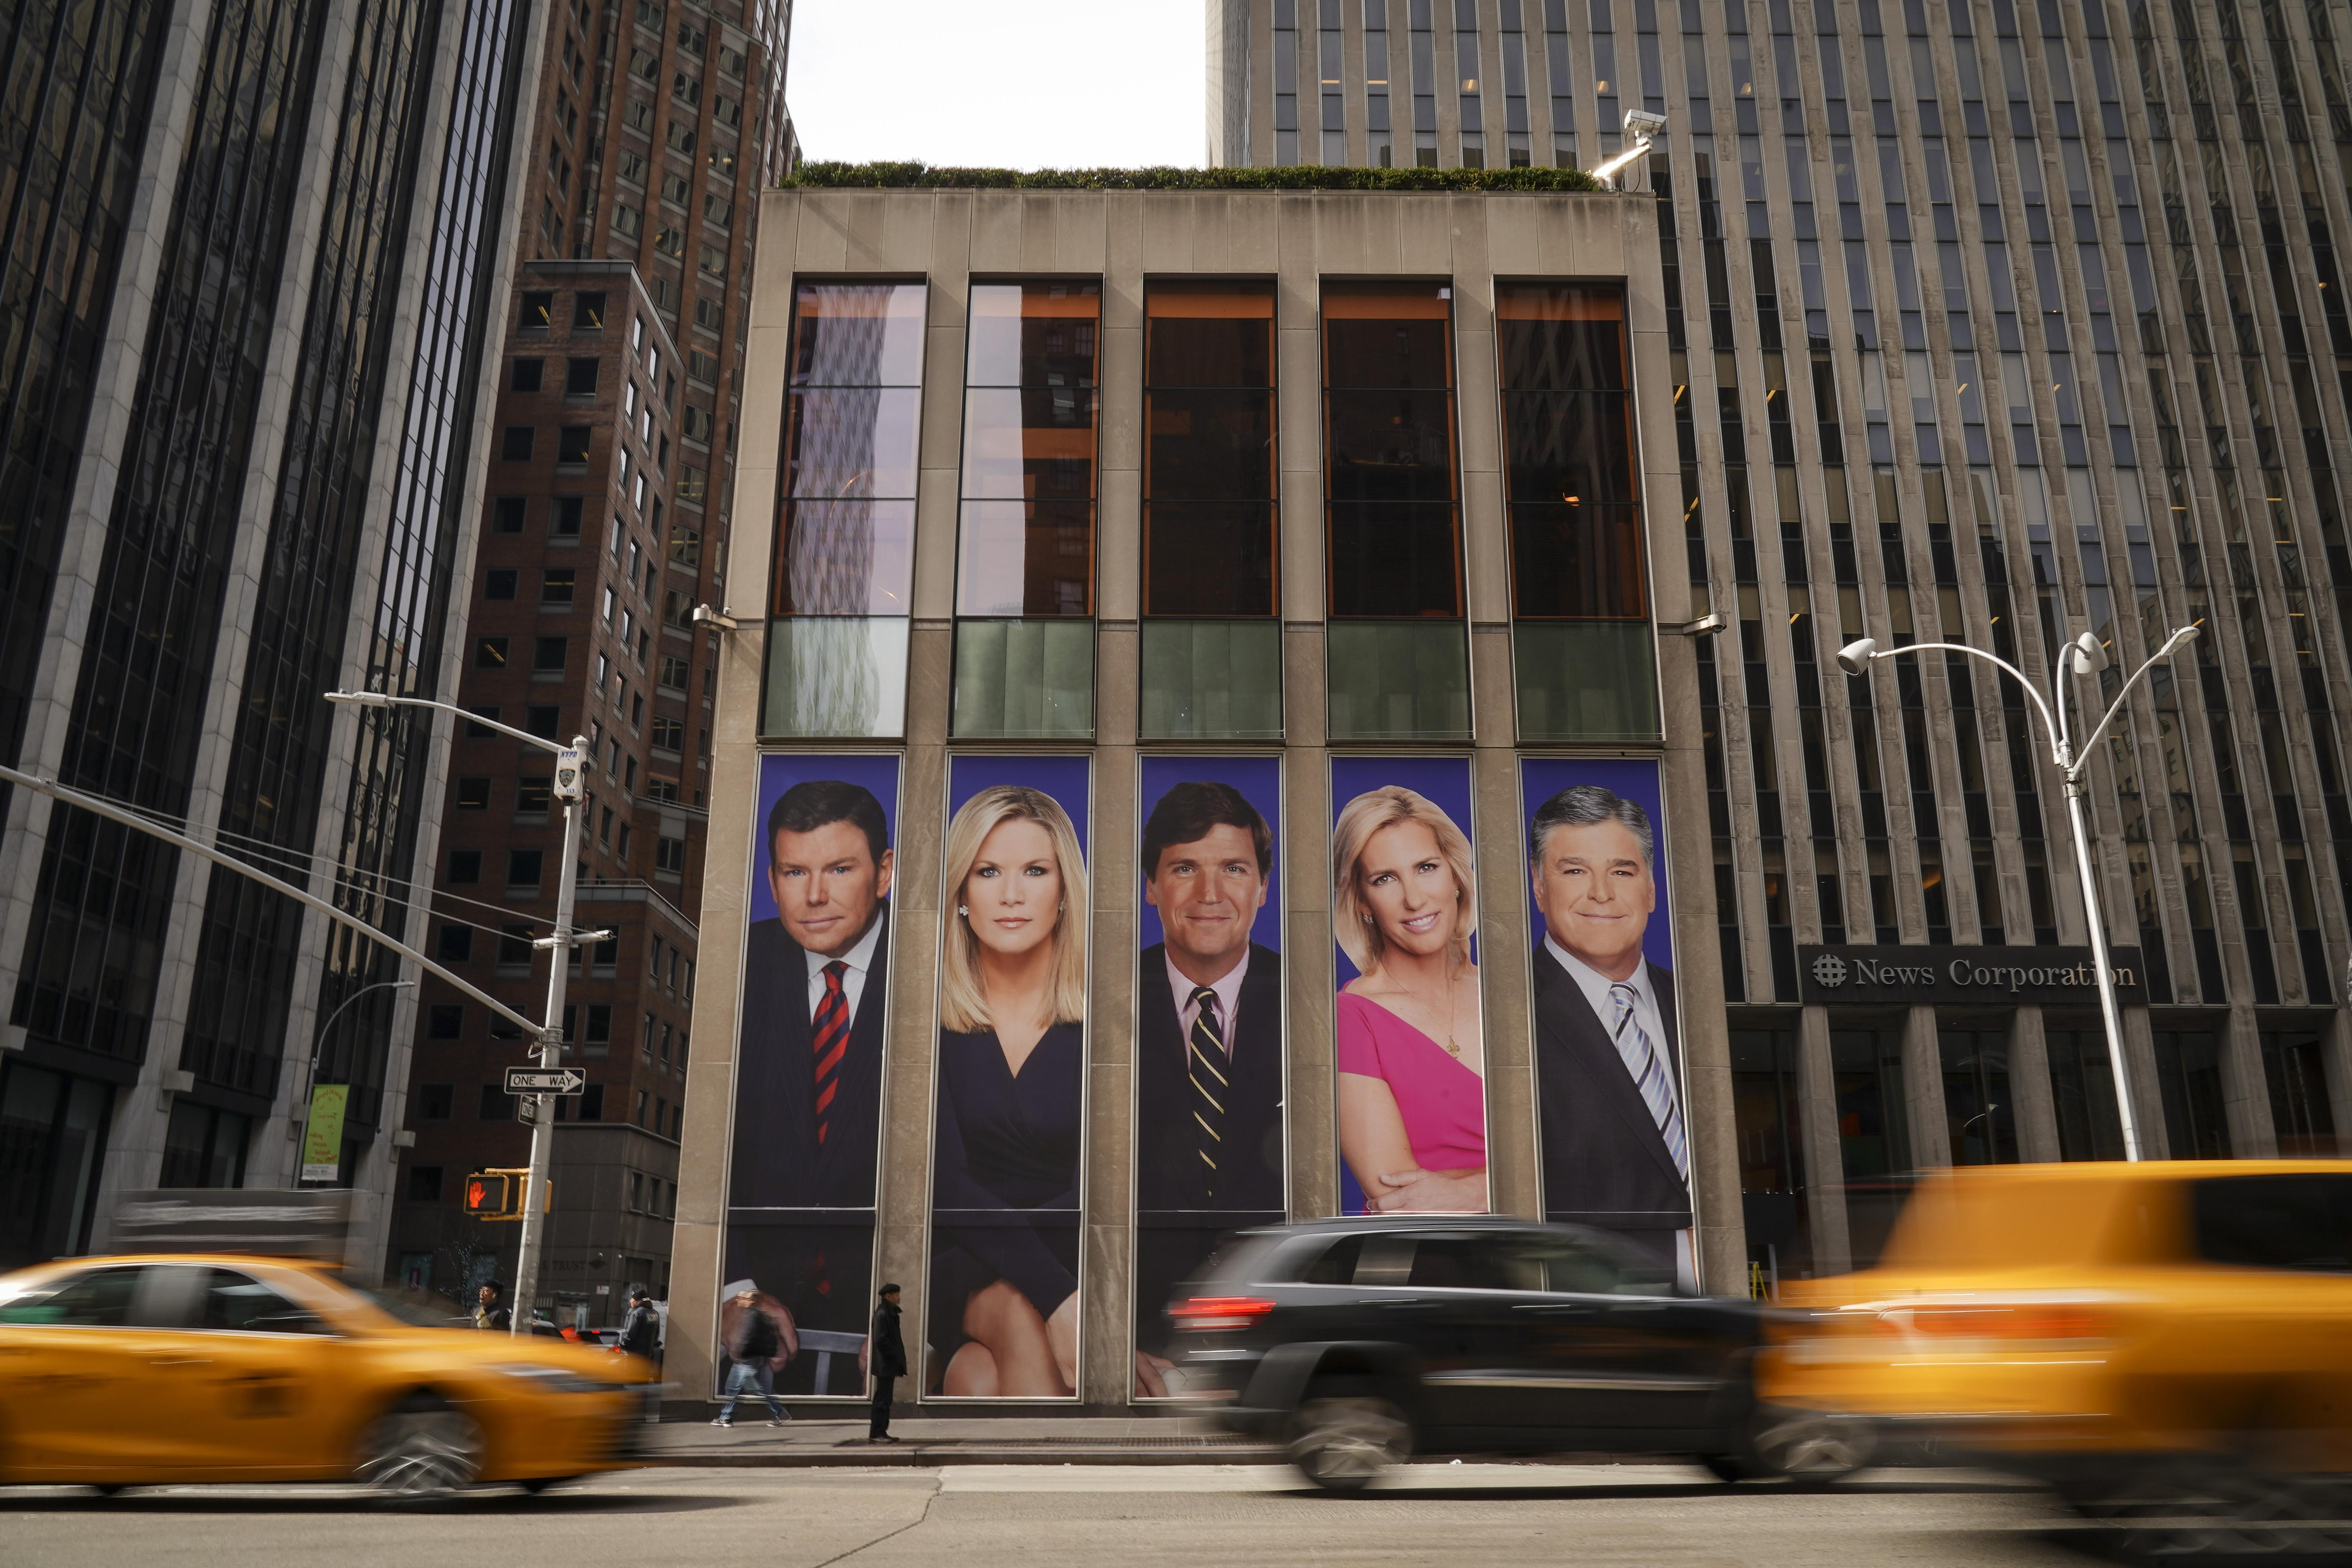 Traffic on Sixth Avenue passes by advertisements featuring Fox News personalities, including Bret Baier, Martha MacCallum, Tucker Carlson, Laura Ingraham, and Sean Hannity, adorn the front of the News Corporation building, March 13, 2019 in New York City. On Wednesday the network's sales executives are hosting an event for advertisers to promote Fox News. Fox News personalities Tucker Carlson and Jeanine Pirro have come under criticism in recent weeks for controversial comments and multiple advertisers have pulled away from their shows. (Photo by Drew Angerer/Getty Images)